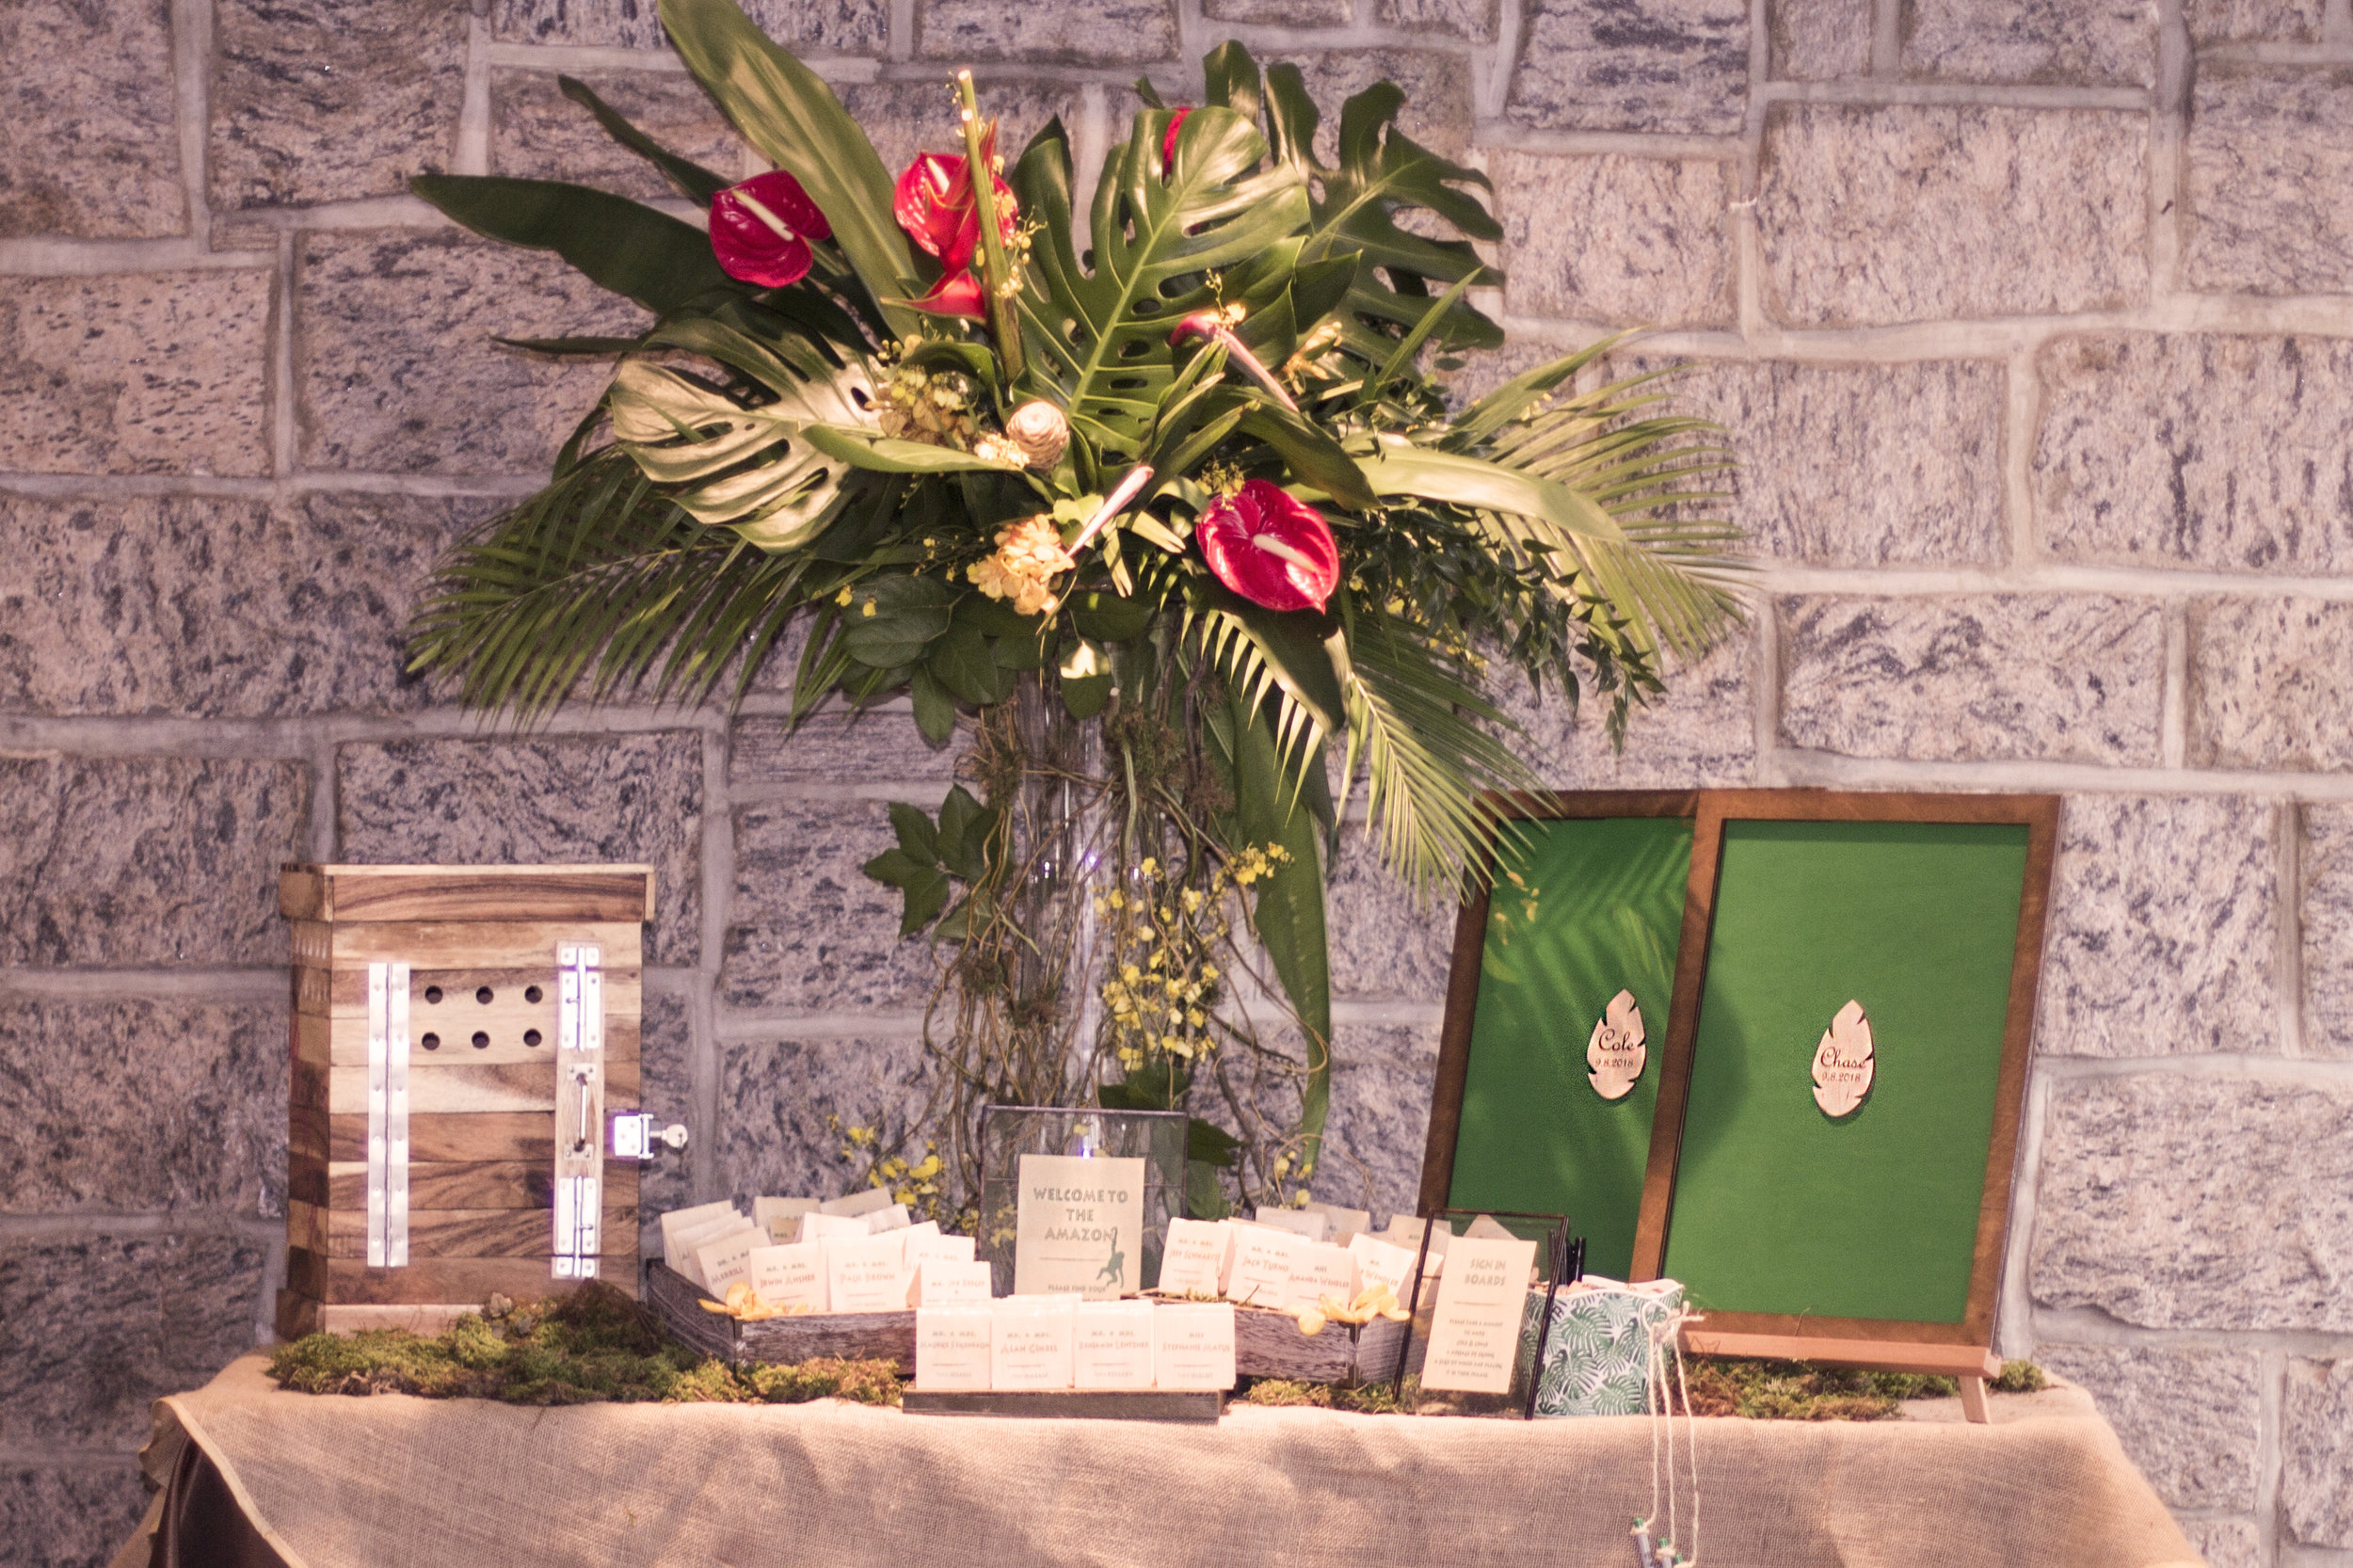 jungle themed mitzvah custom card box tropical arrangement real wood placecard and drop in leaf sign in boards